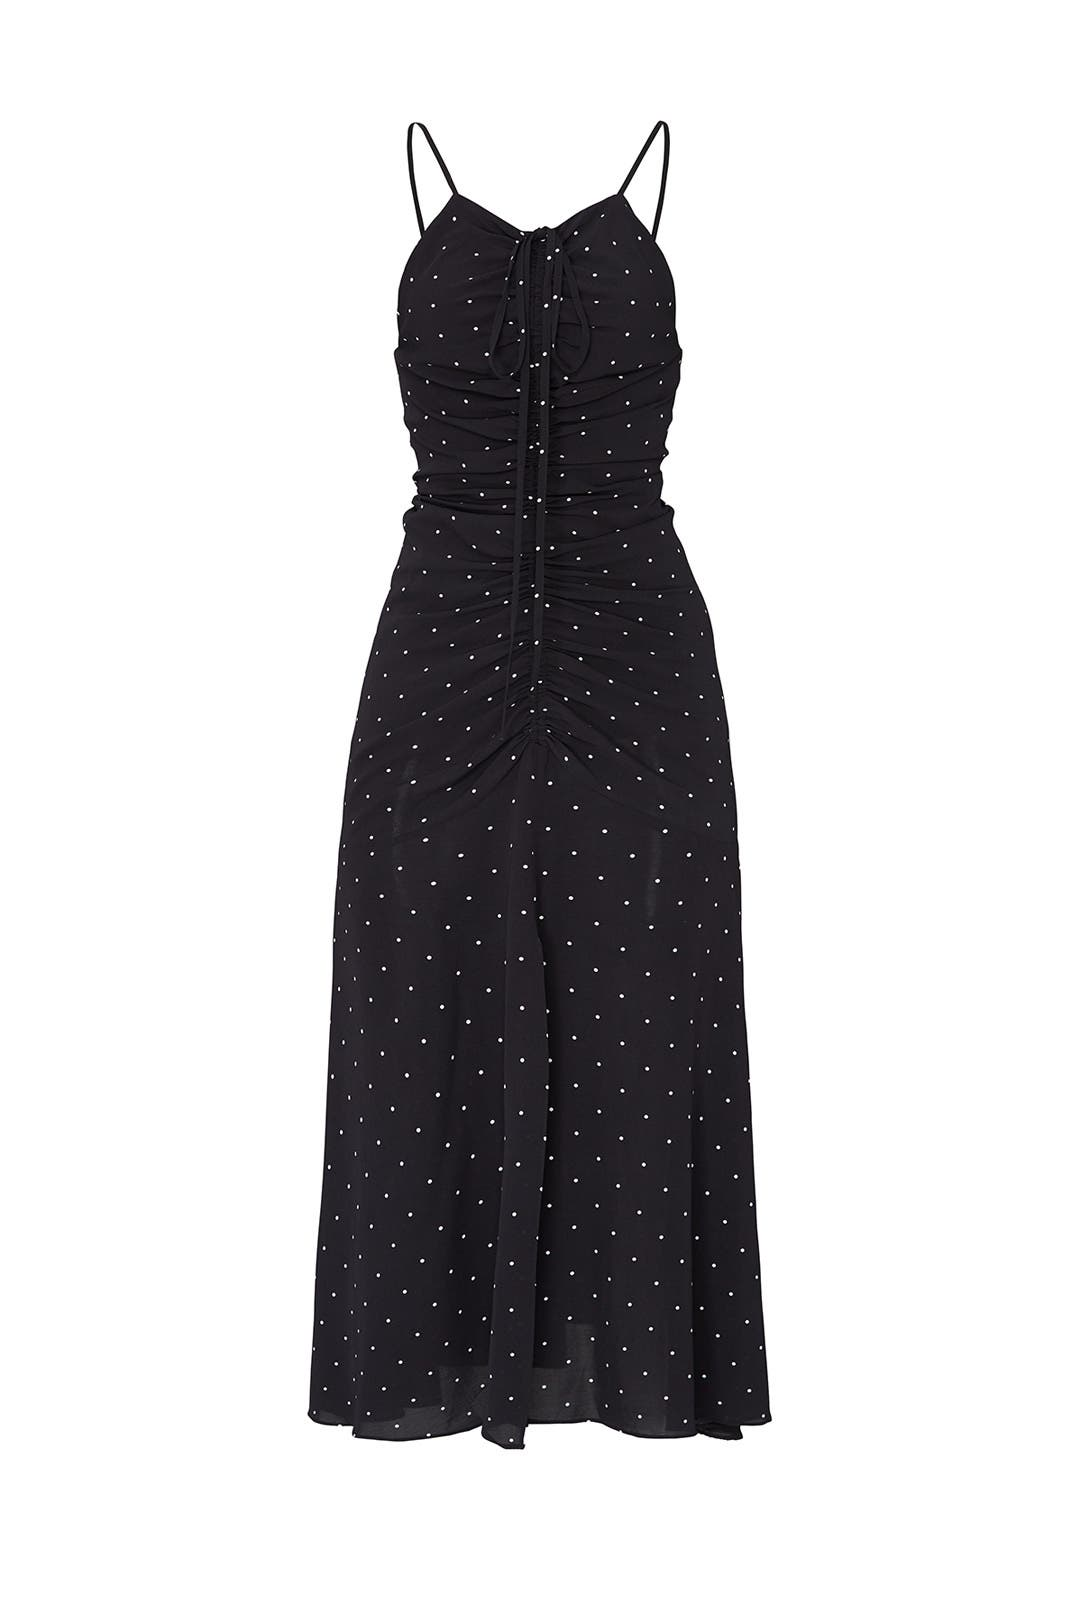 b4276cd3420 Oscar Rouched Midi Dress by alice McCALL for  50